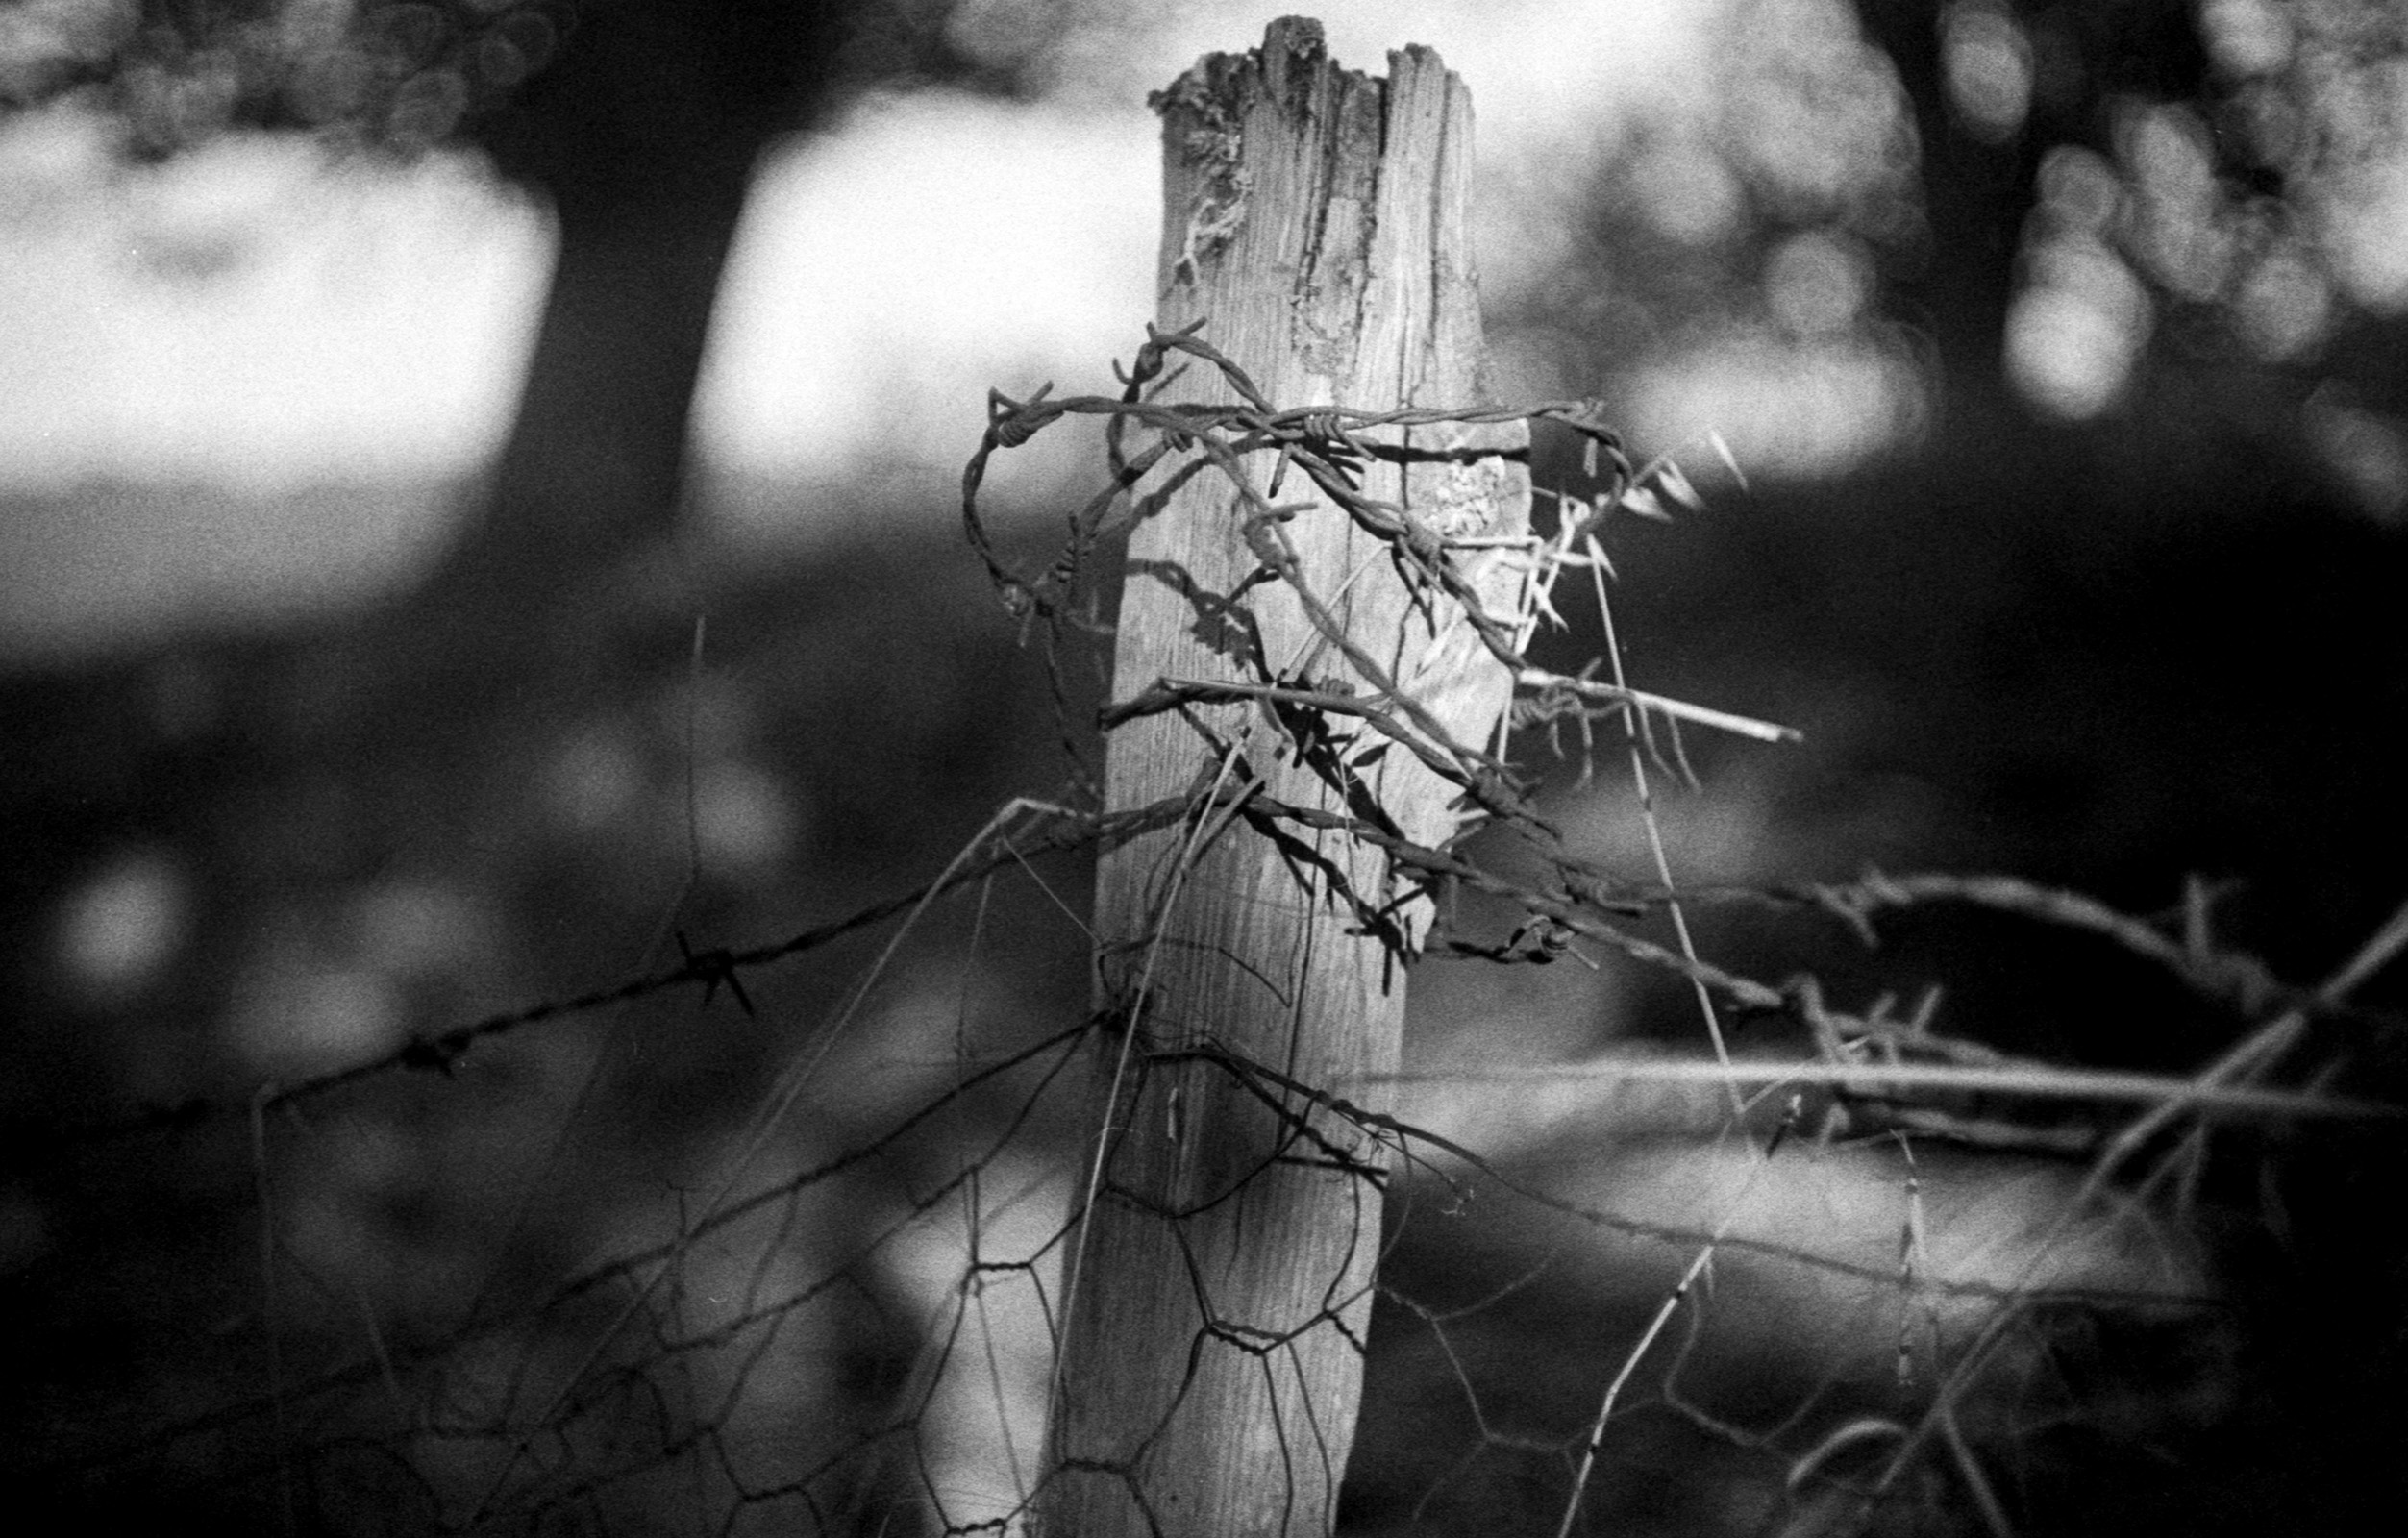 Black and white photographh of a fence post wrapped in barbed wire